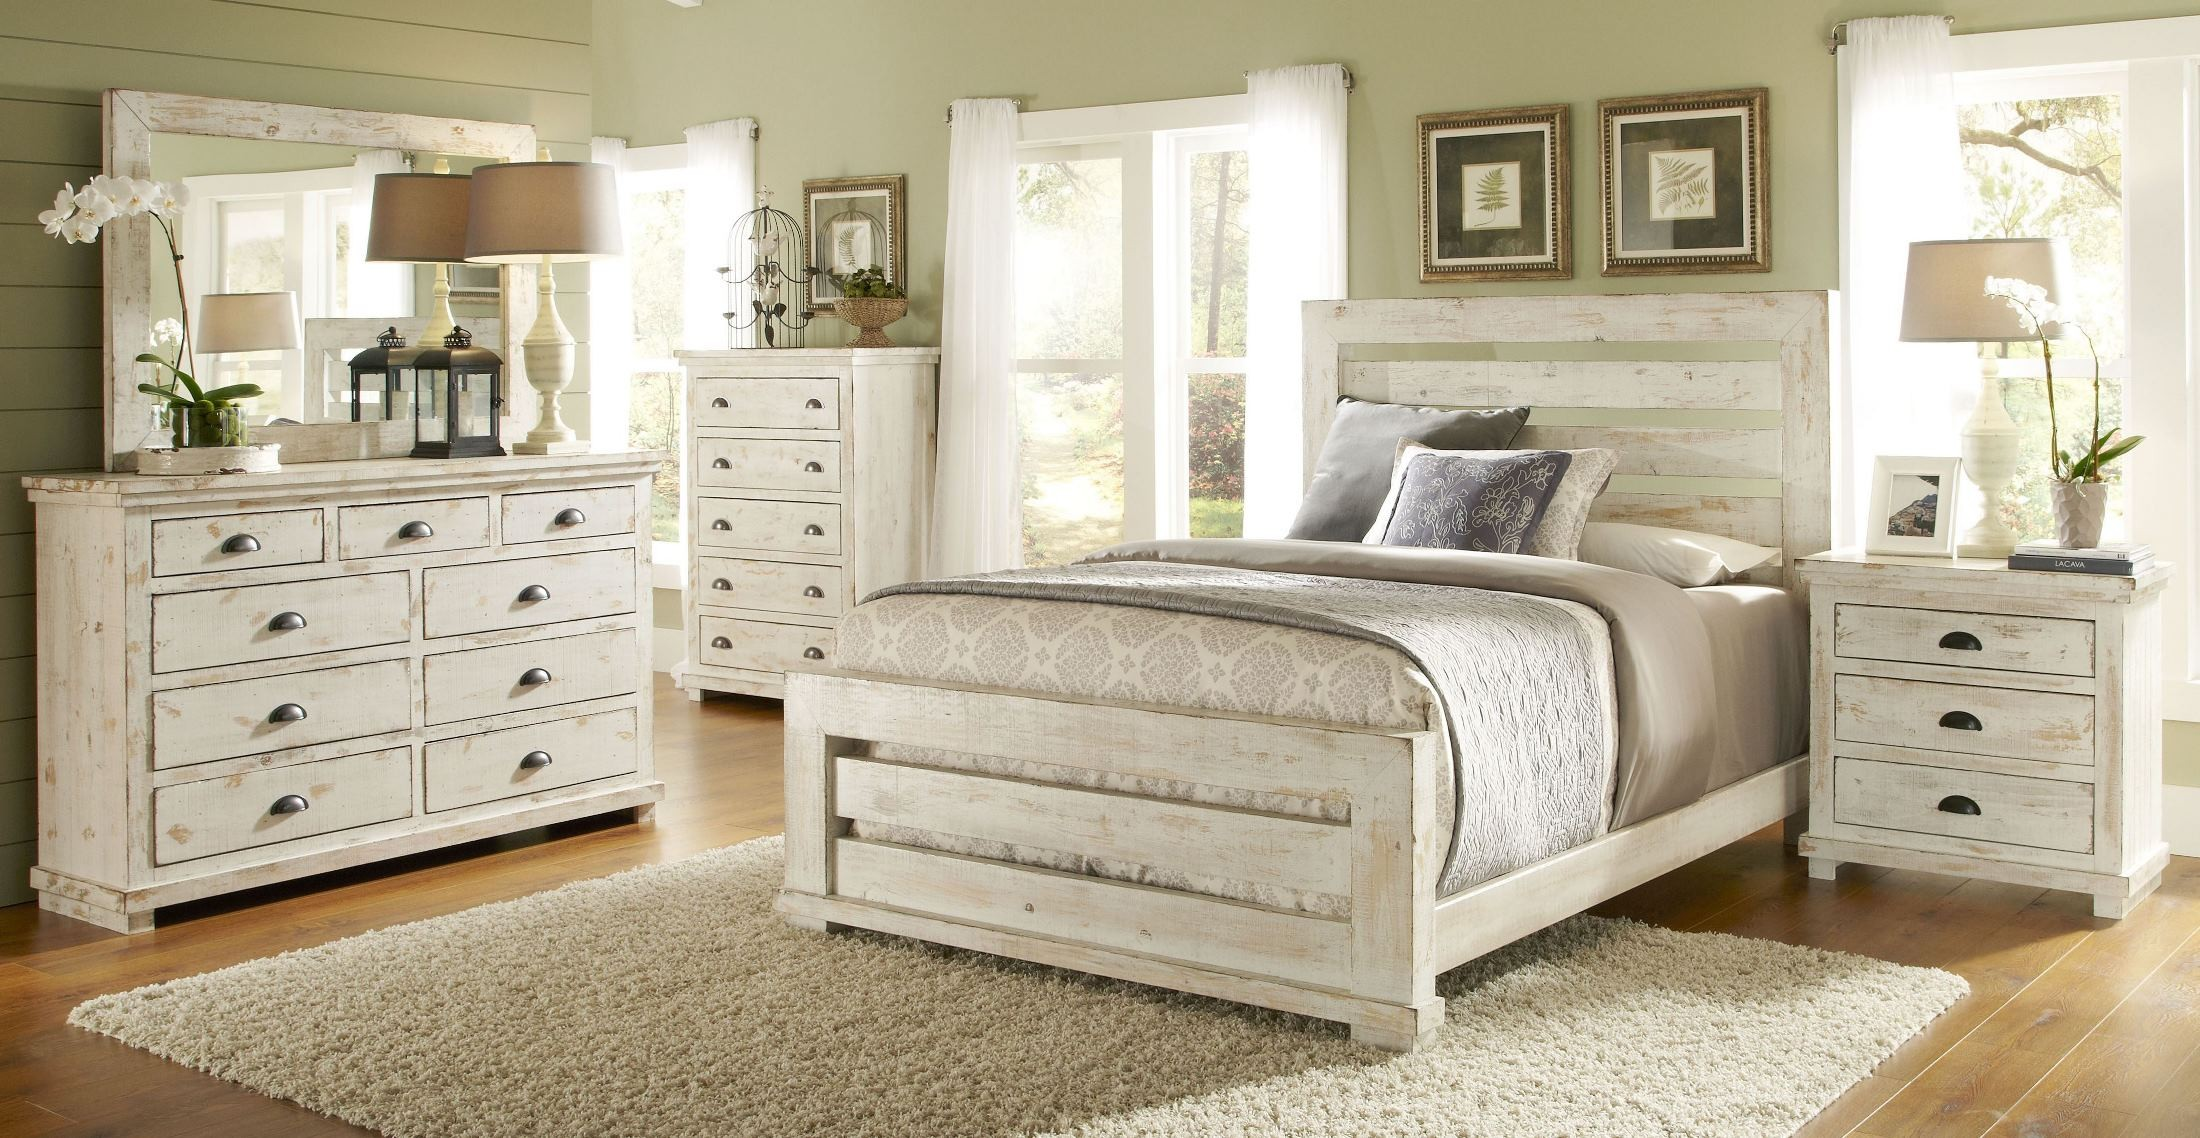 Willow distressed white slat bedroom set 1stopbedrooms - Bedroom furniture sets buy now pay later ...